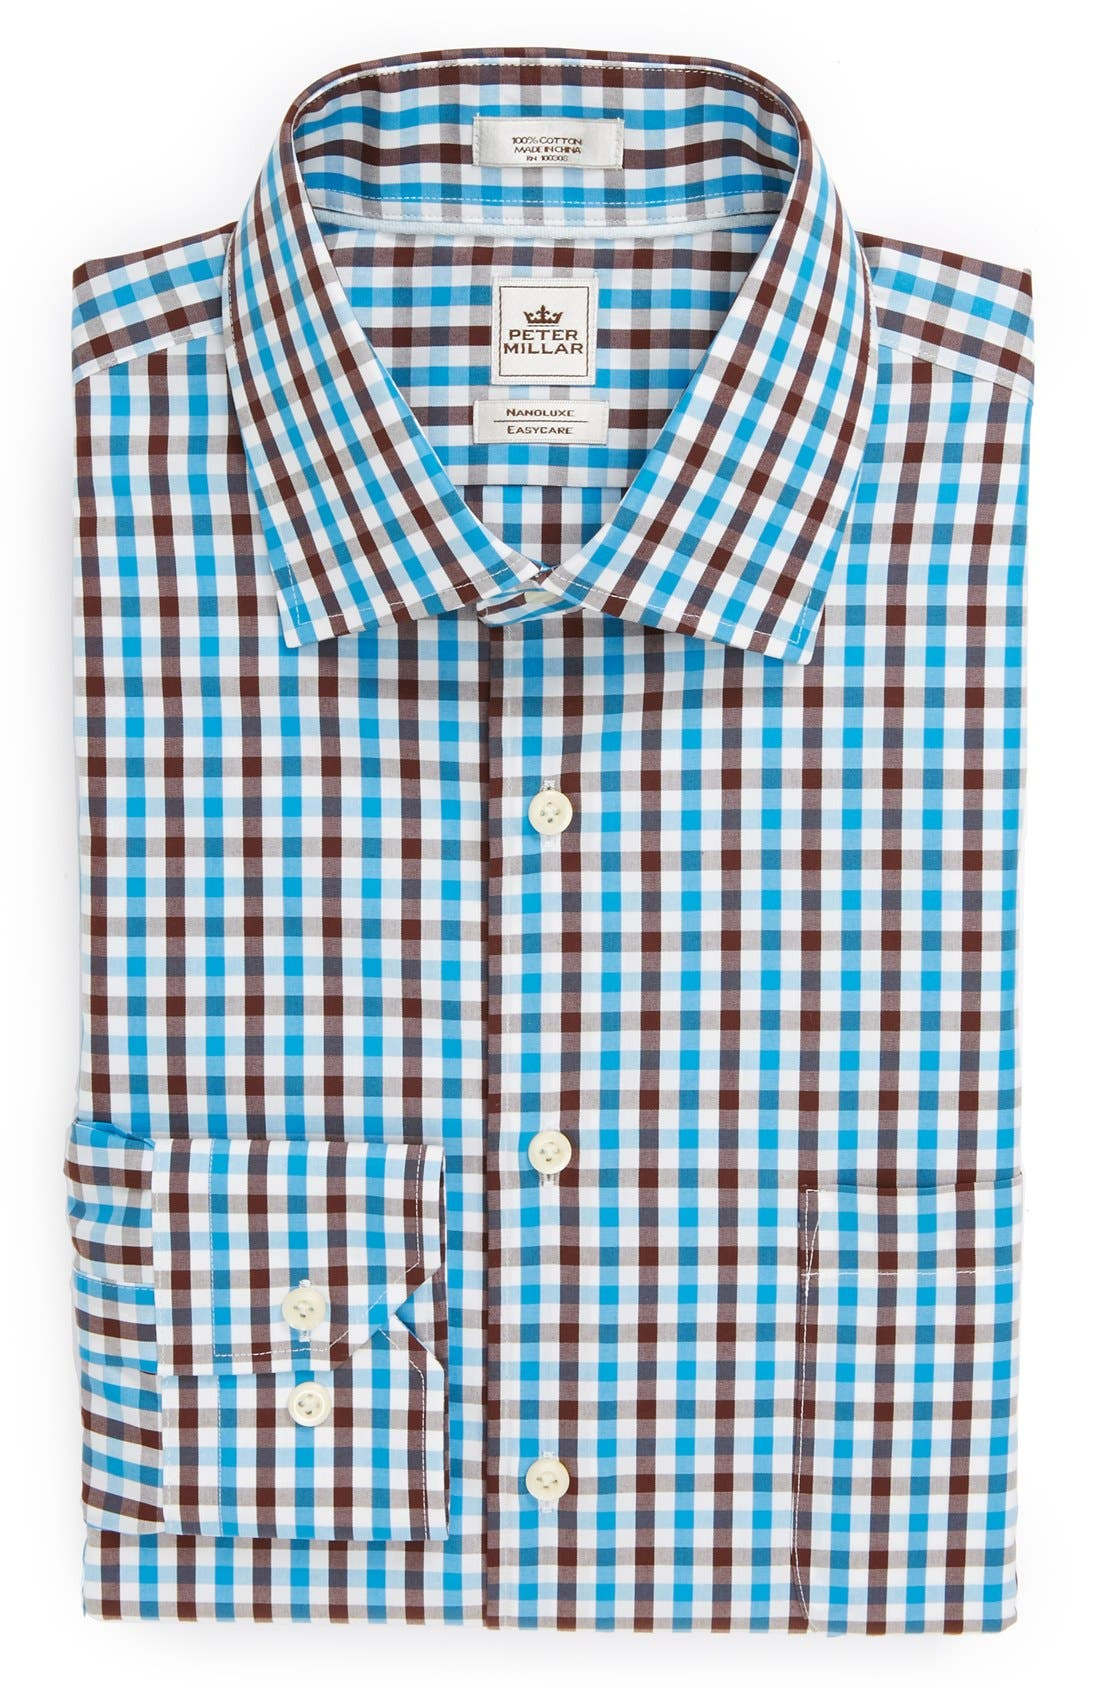 PETER MILLAR 'Nanoluxe' Regular Fit Easy Care Dress Shirt, Main, color, 400